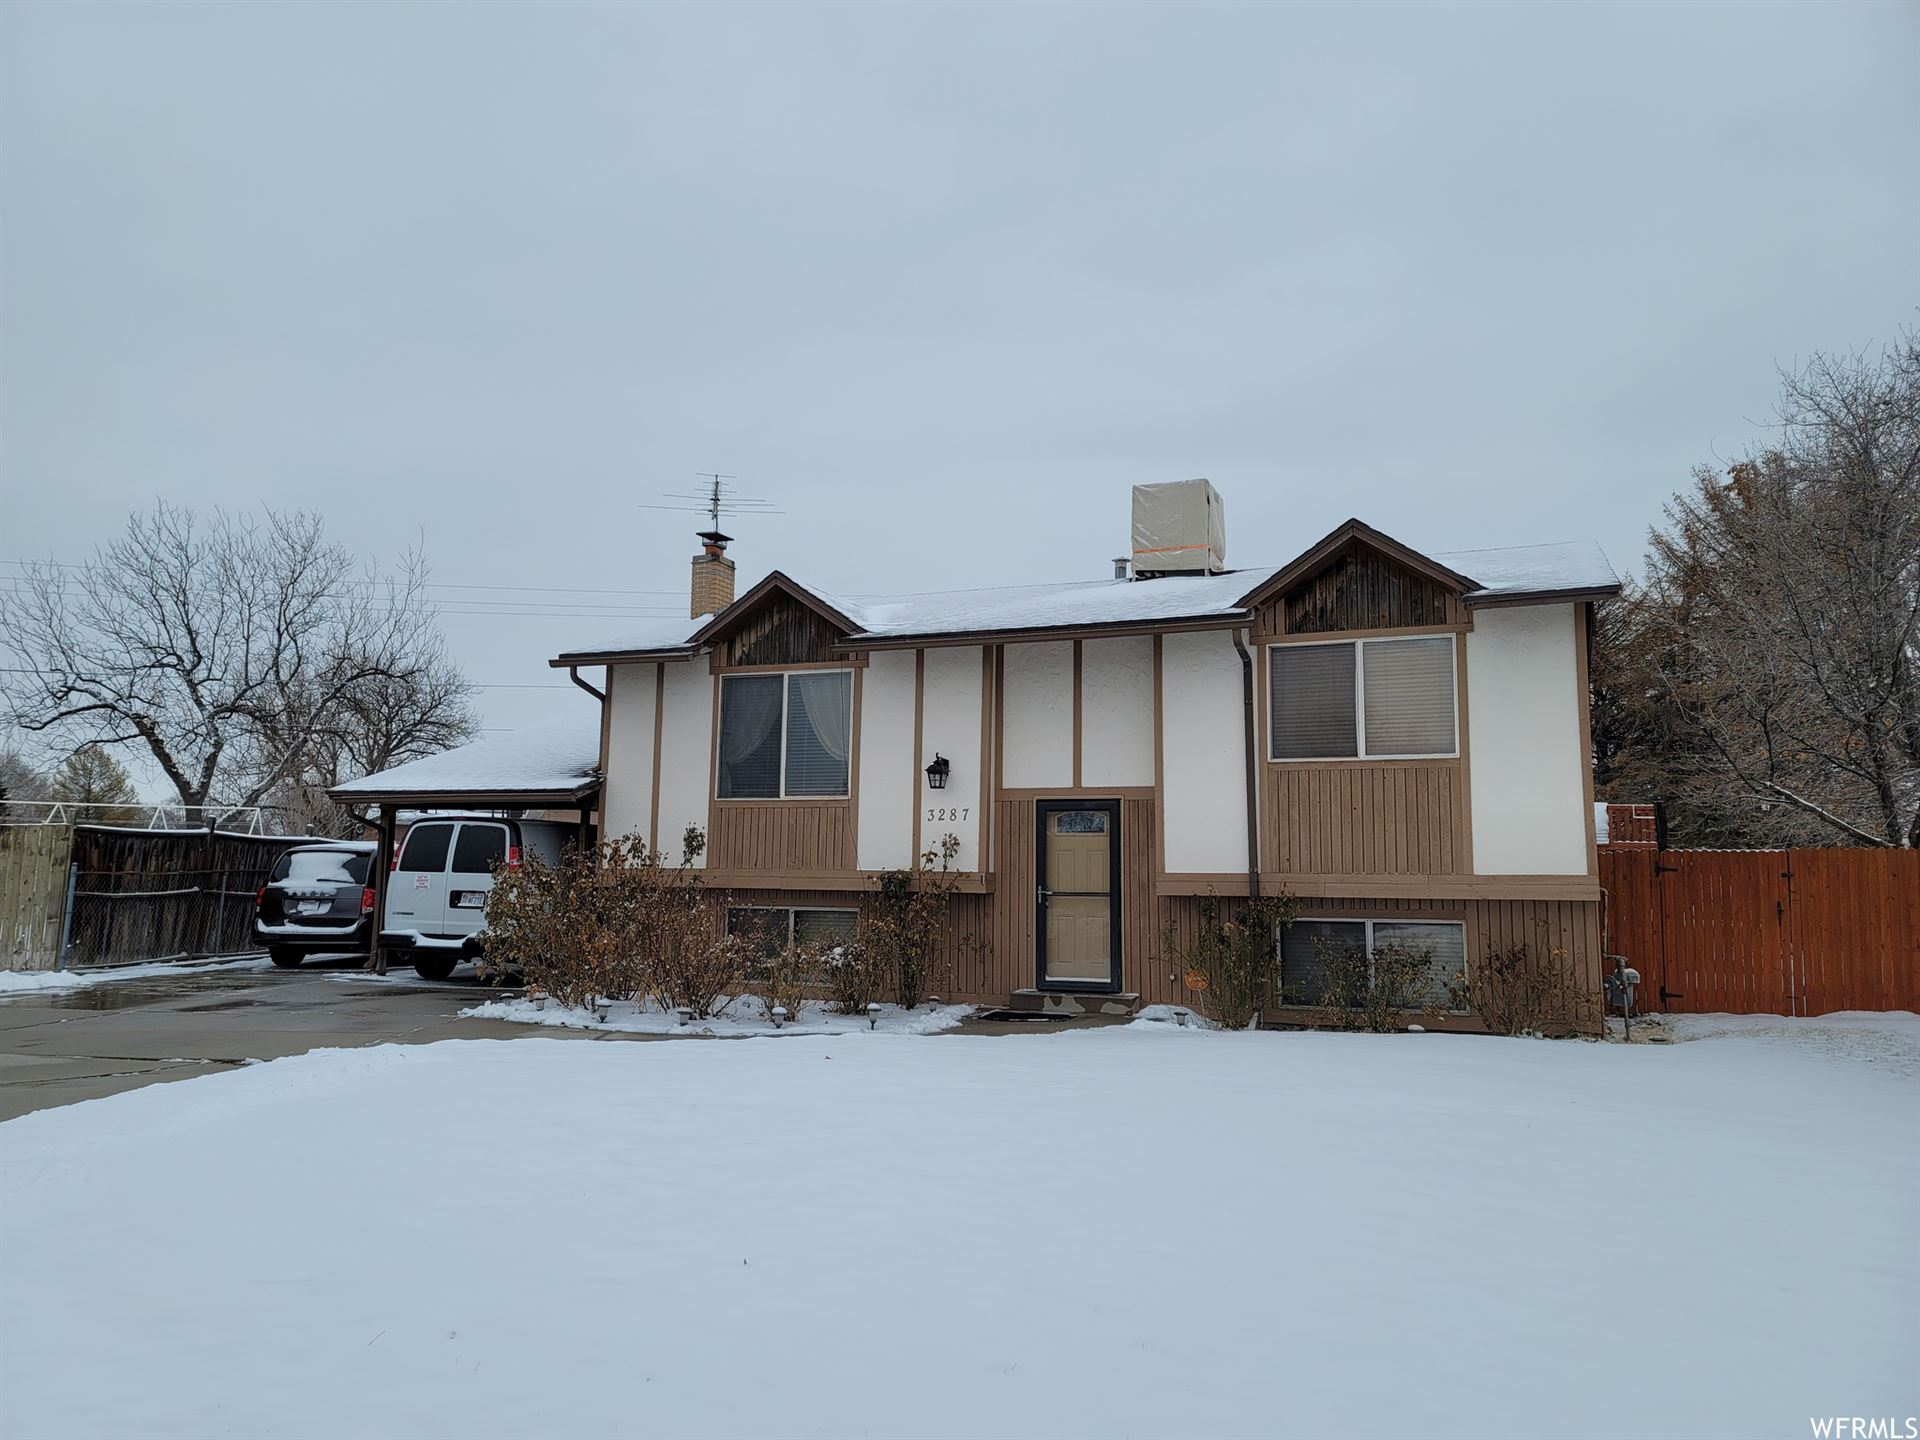 Photo of 3287 S 4500 W, West Valley City, UT 84120 (MLS # 1727547)